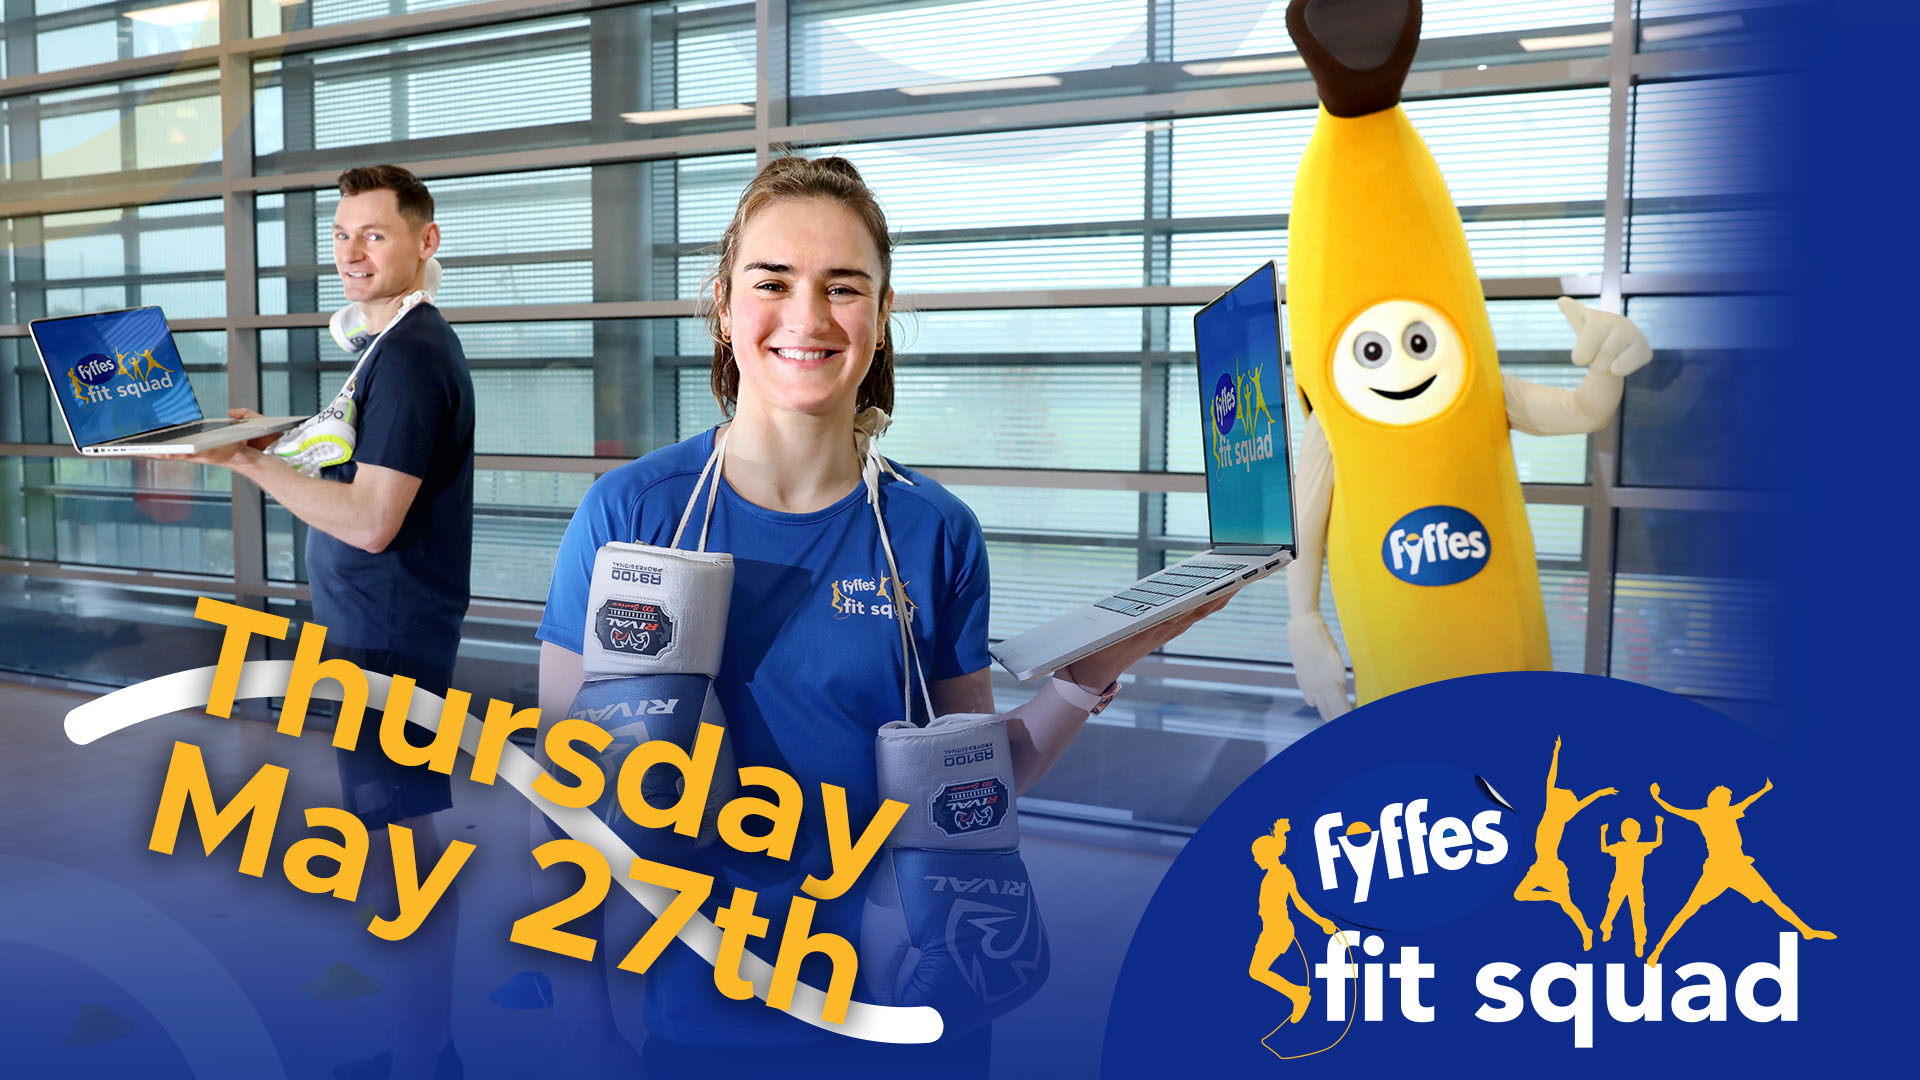 Fyffes Fit Squad Week 10 | Thursday, May 27th 2021